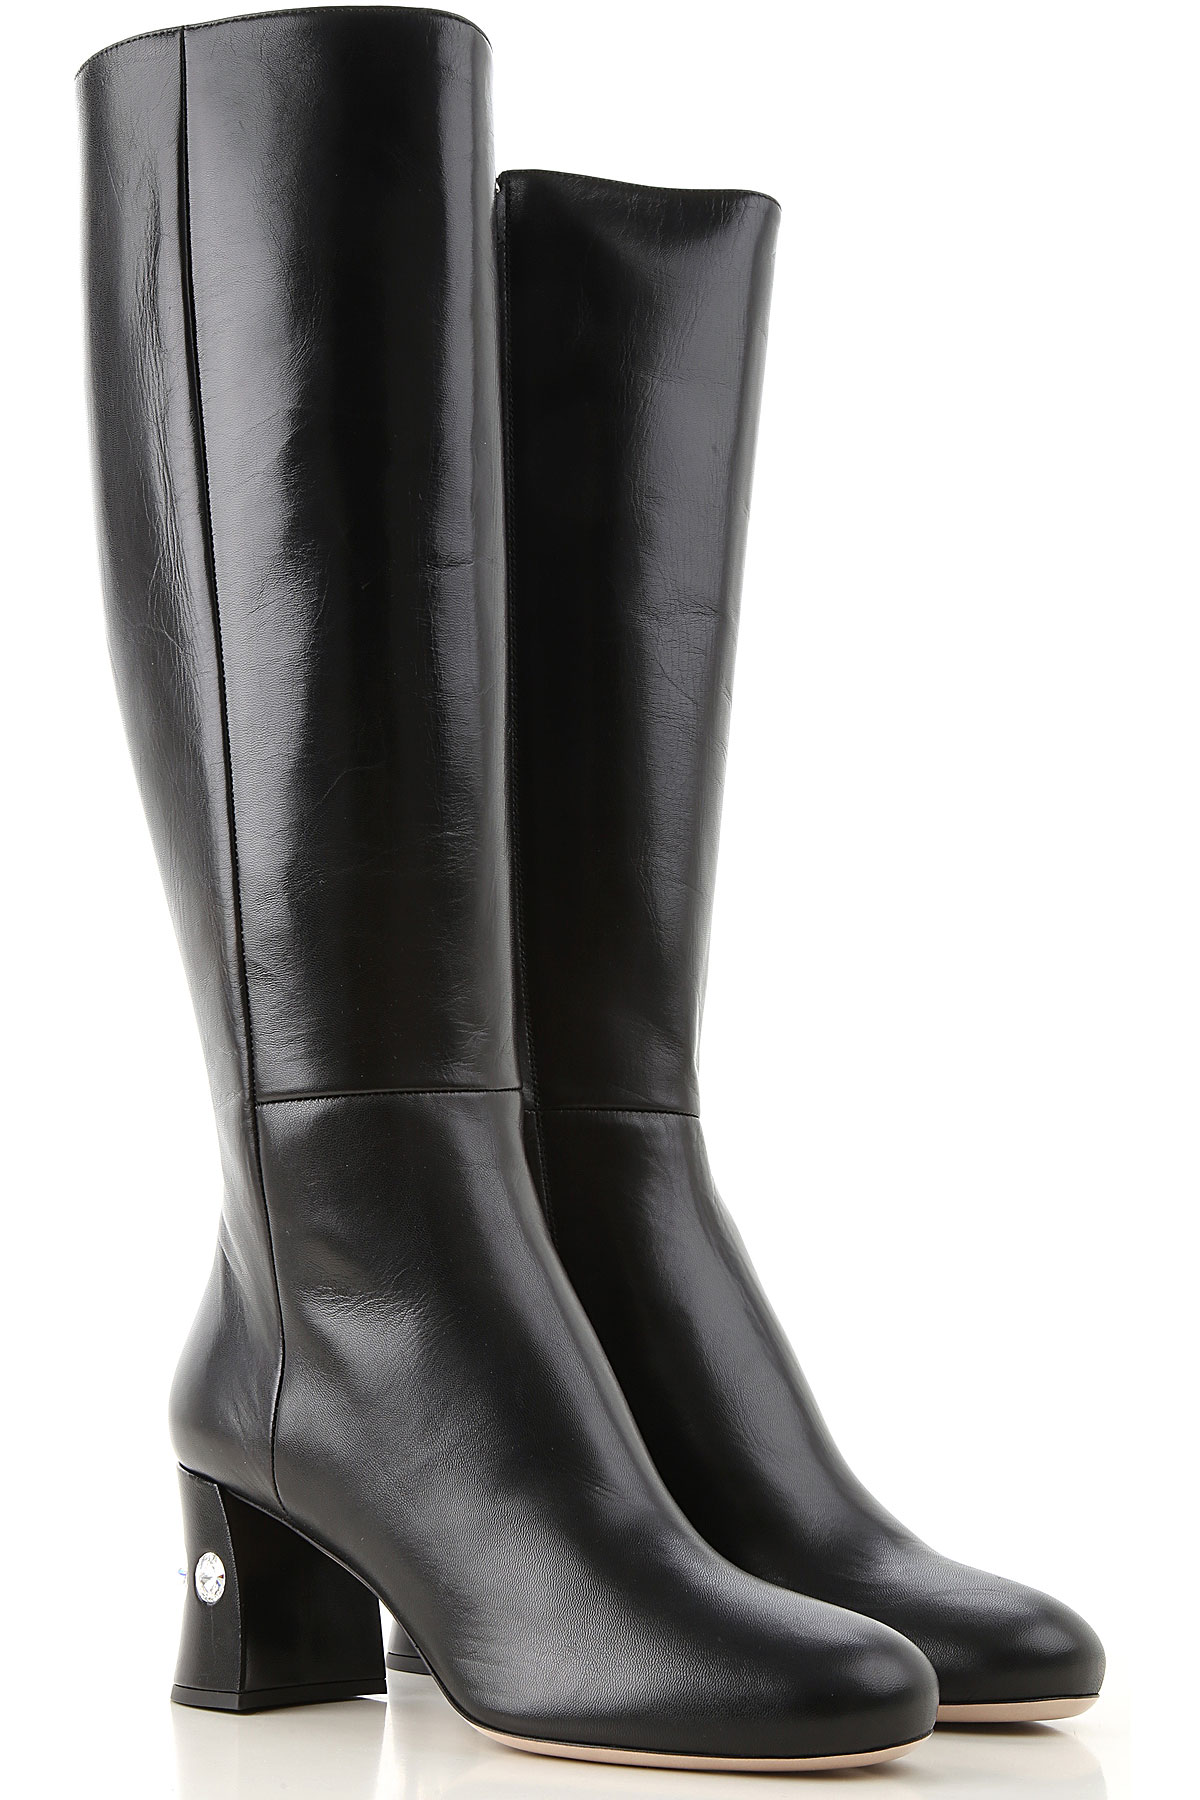 Miu Miu Boots for Women, Booties On Sale, Black, Leather, 2019, 10 6 6.5 7 7.5 8 8.5 9